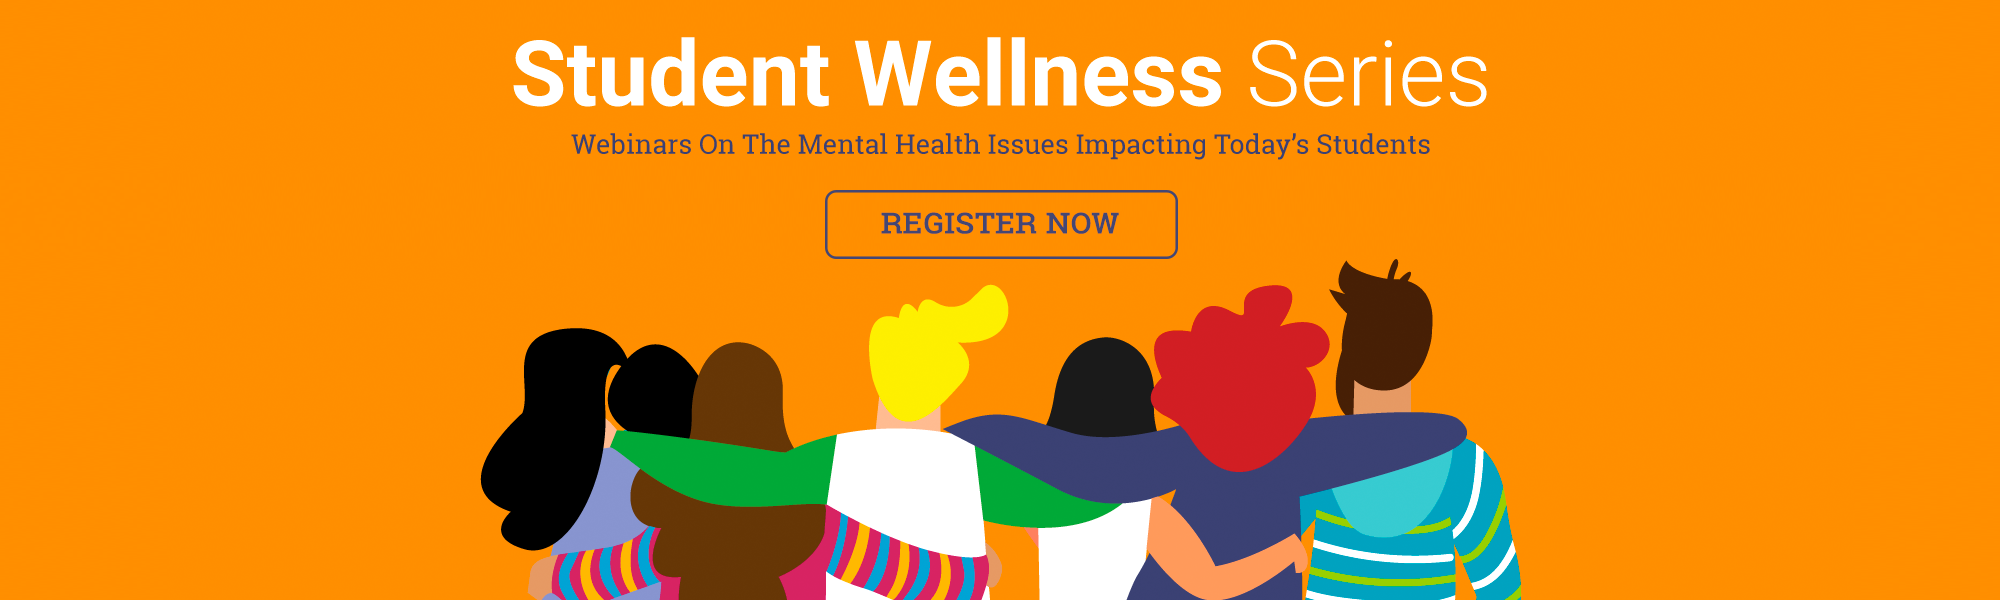 Student Wellness Series: Webinars on the Mental Health Issues Impacting Today's Students